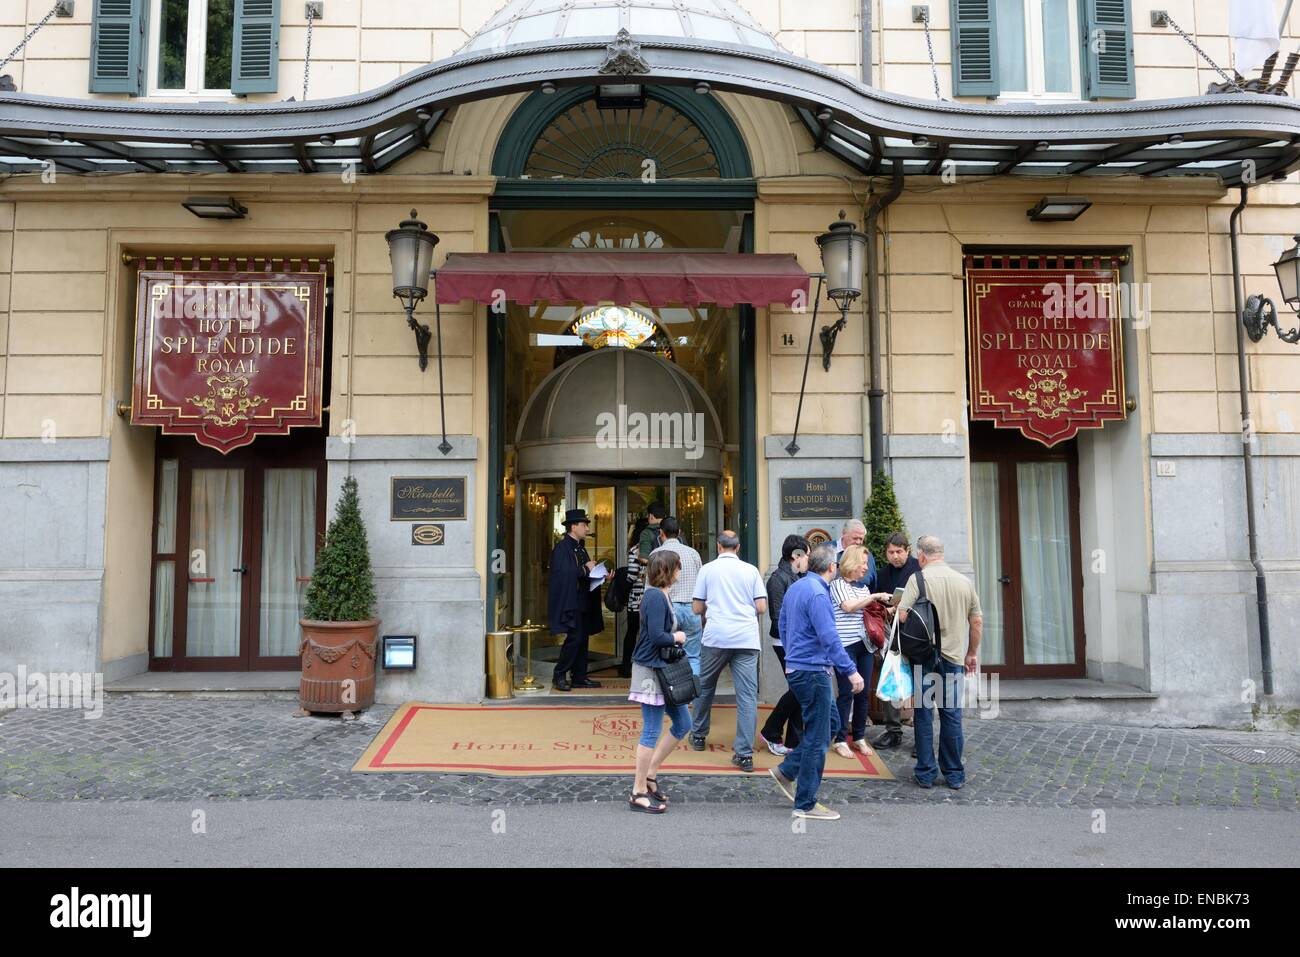 People At The Entrance To The Grand Lux Hotel Splendide Royal In